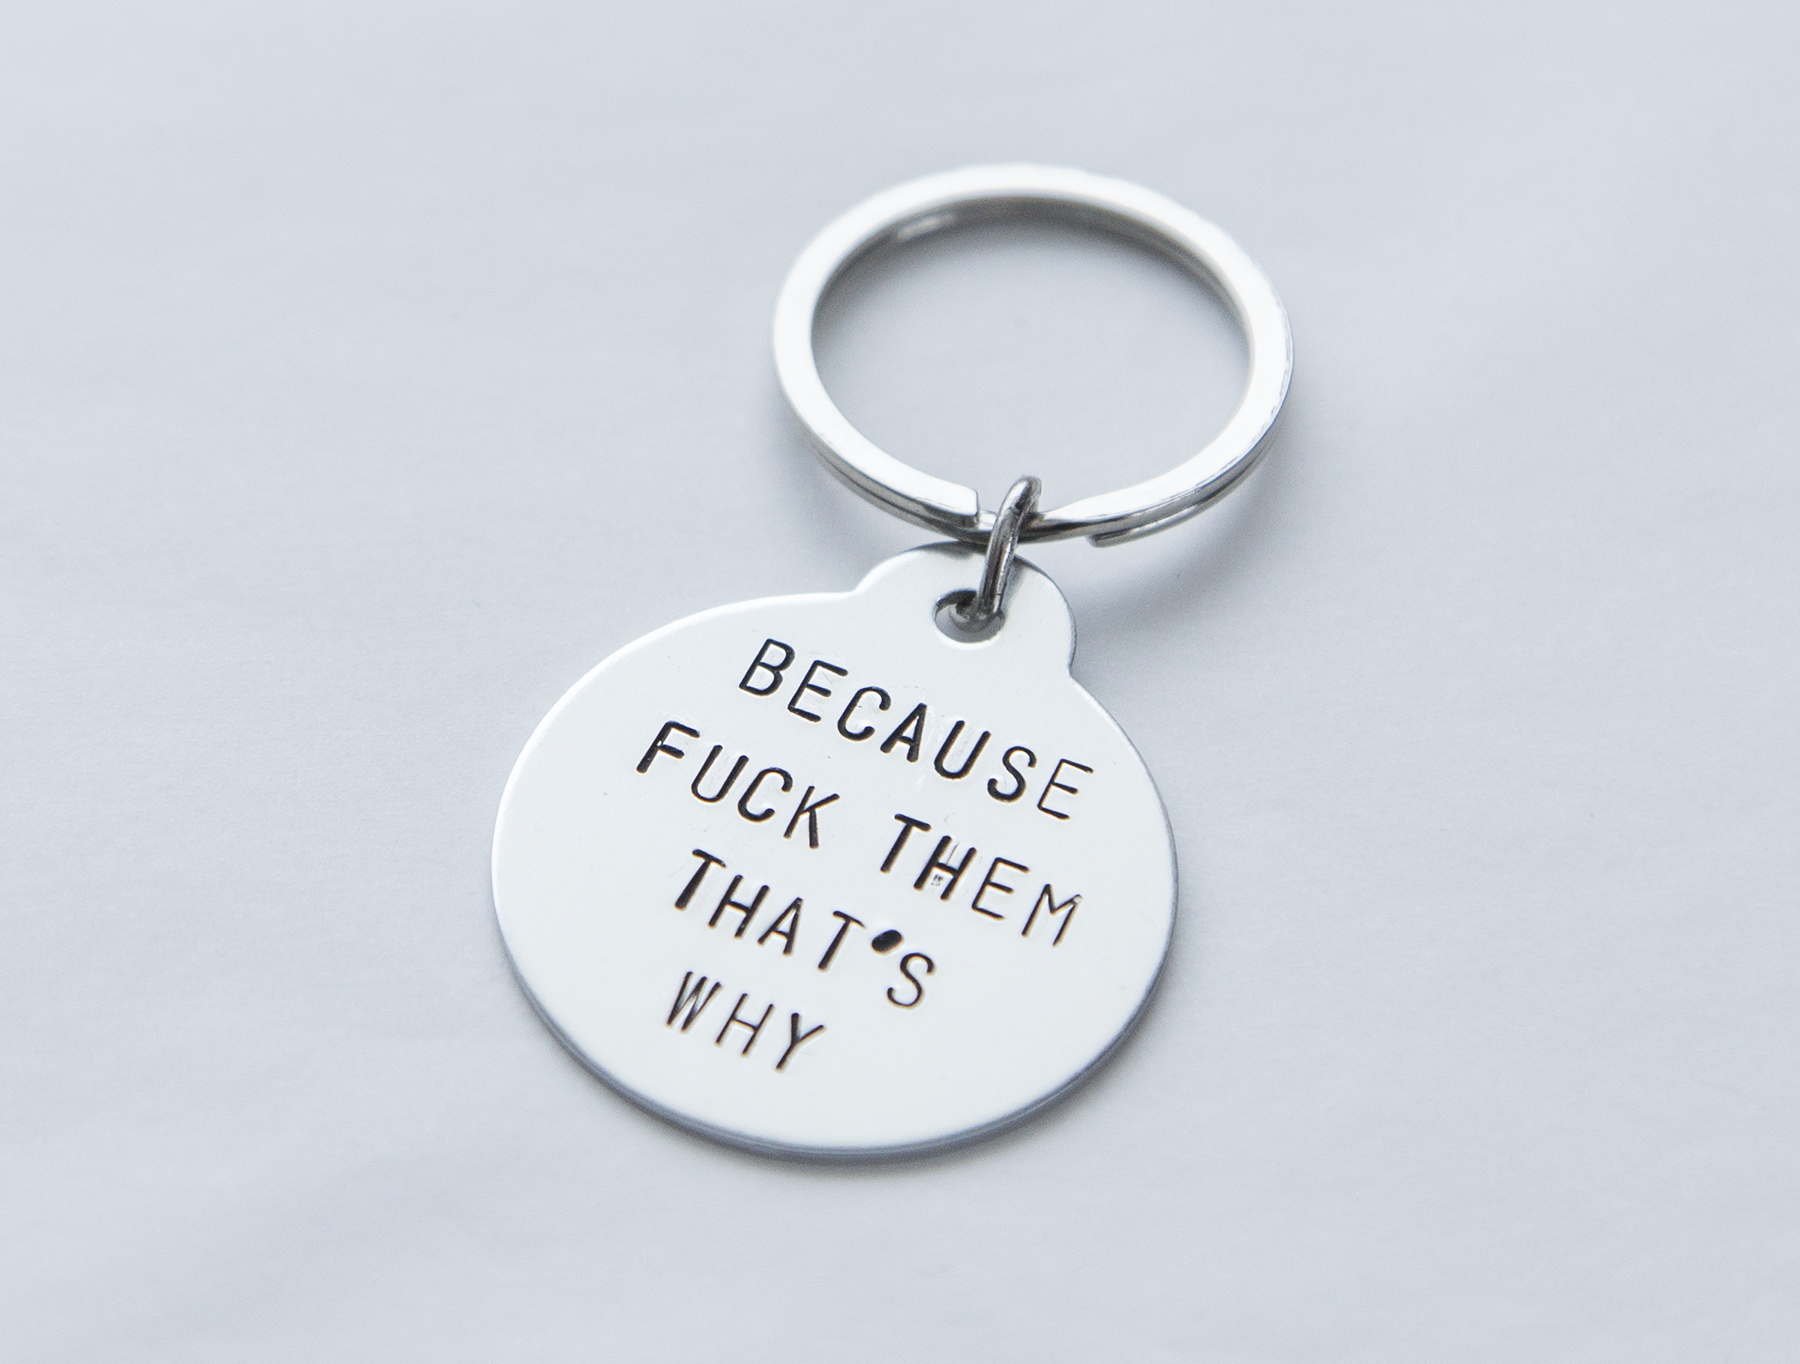 Because F Them That S Why Keyring Funny Gift Accessory Valentine Gift For Him Sold By Byvellamo On Storenvy